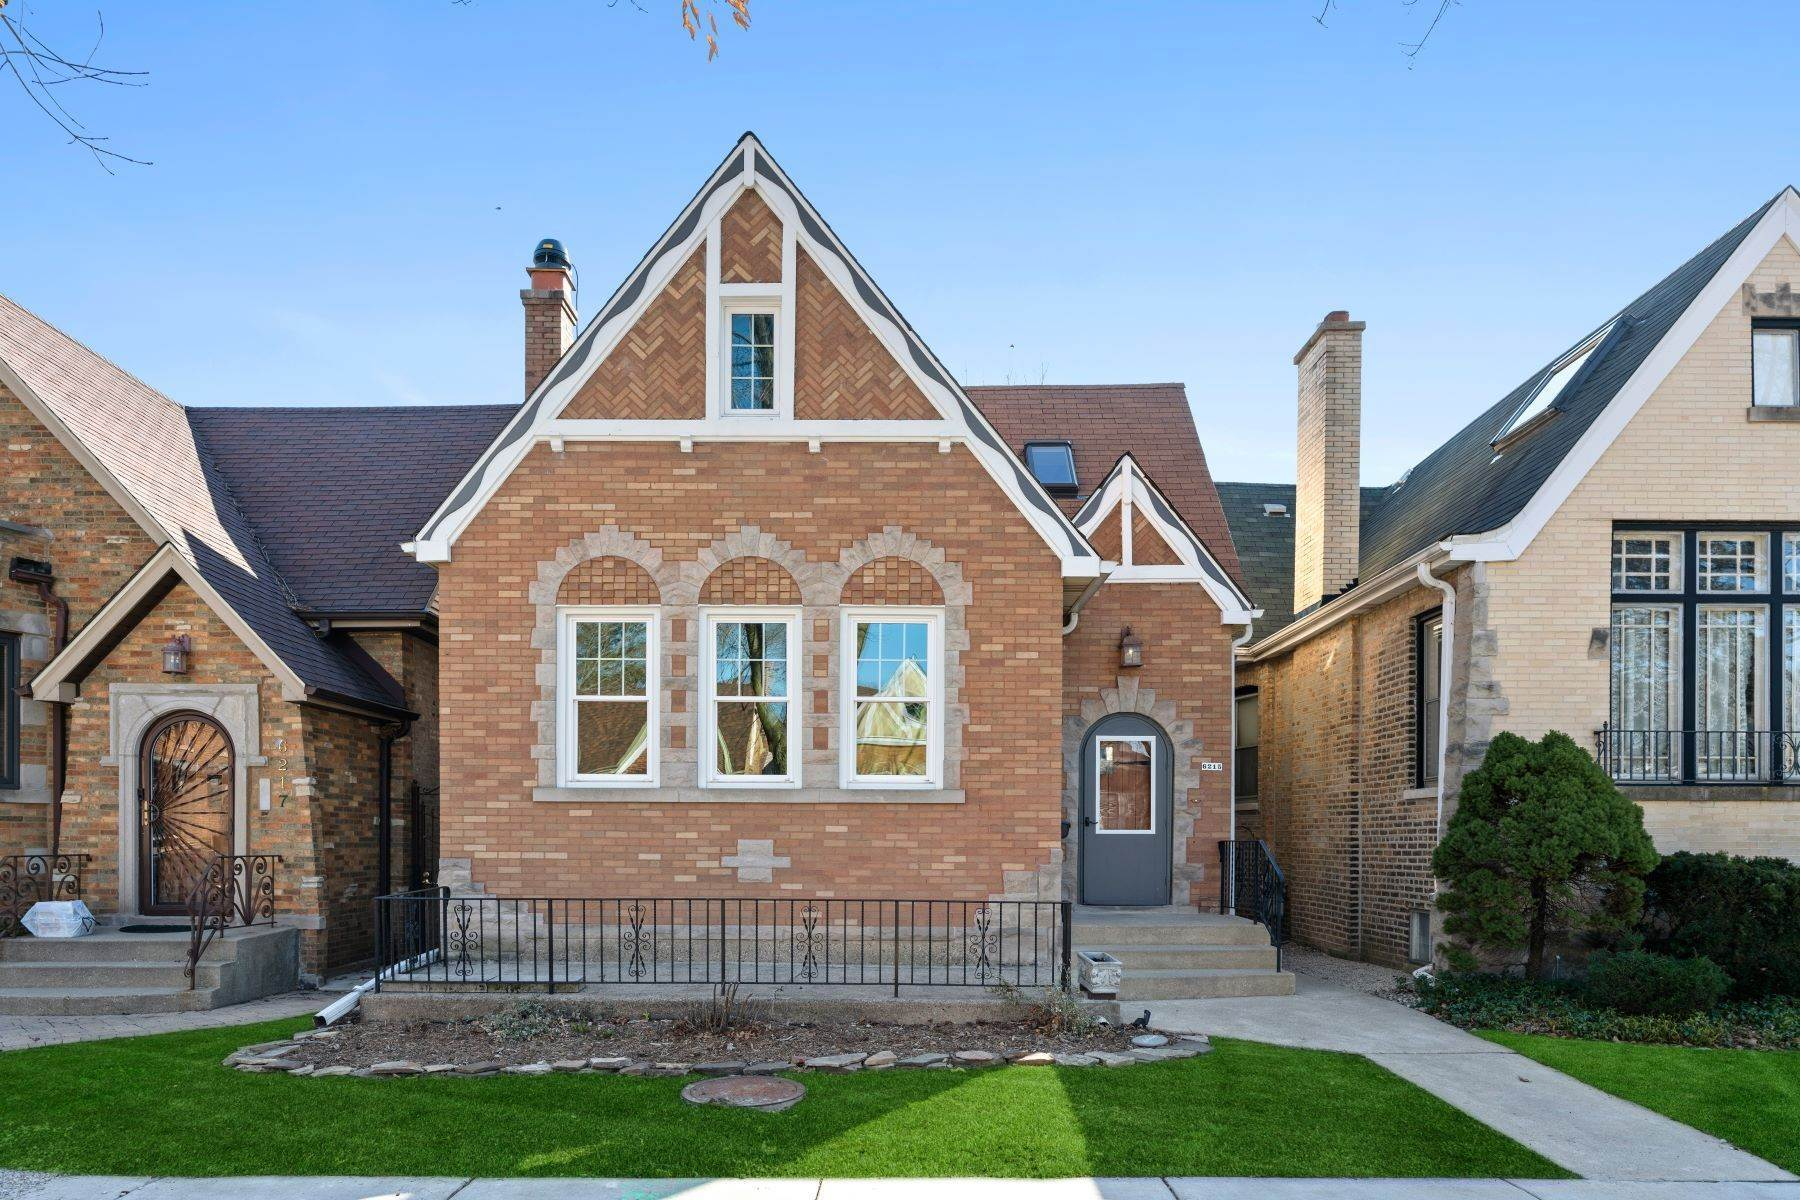 Single Family Homes for Sale at Inherent Warmth and Character 6215 N Moody Avenue Chicago, Illinois 60646 United States